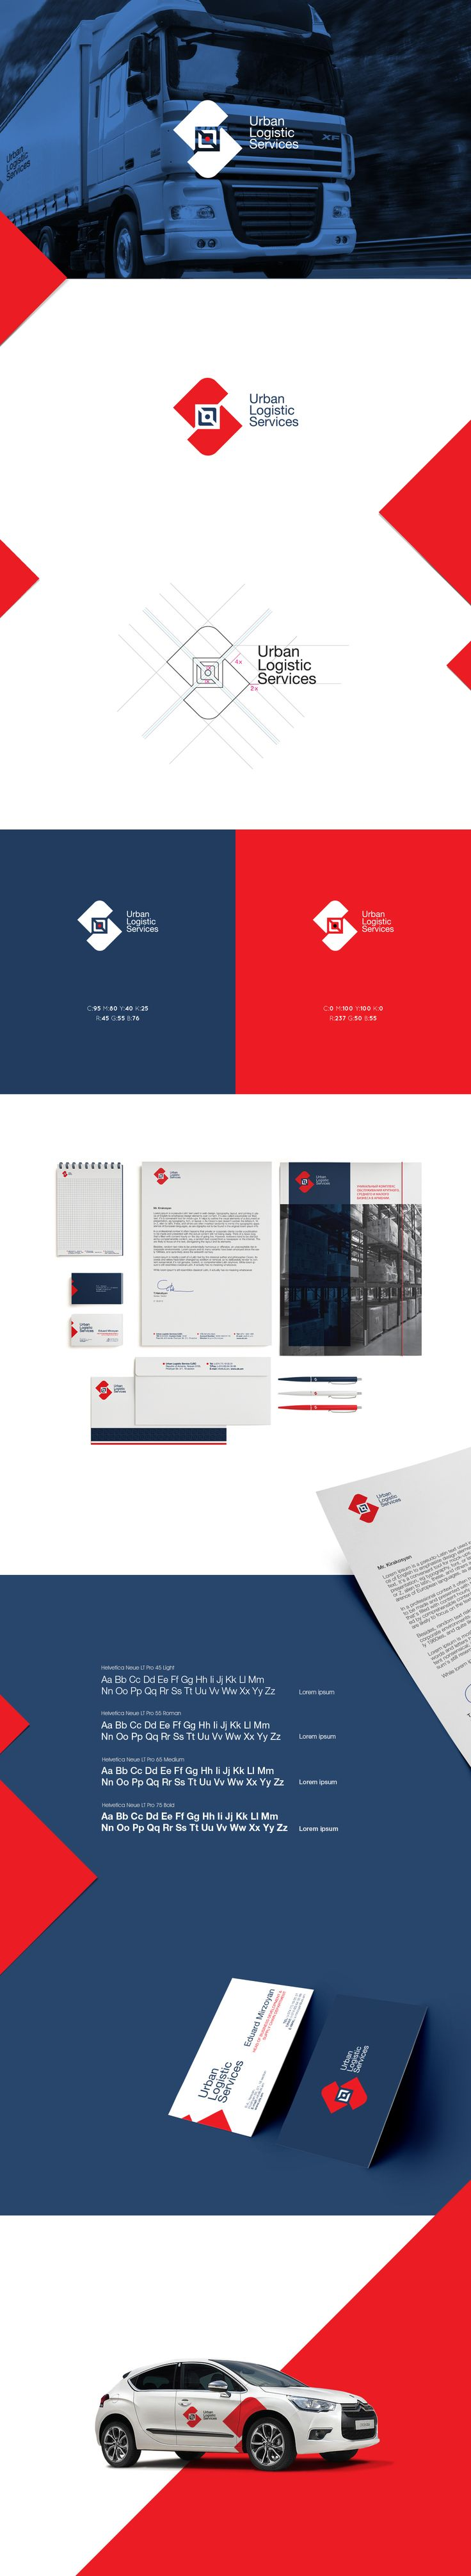 Branding for URBAN LOGISTIC SERVICES on Behance